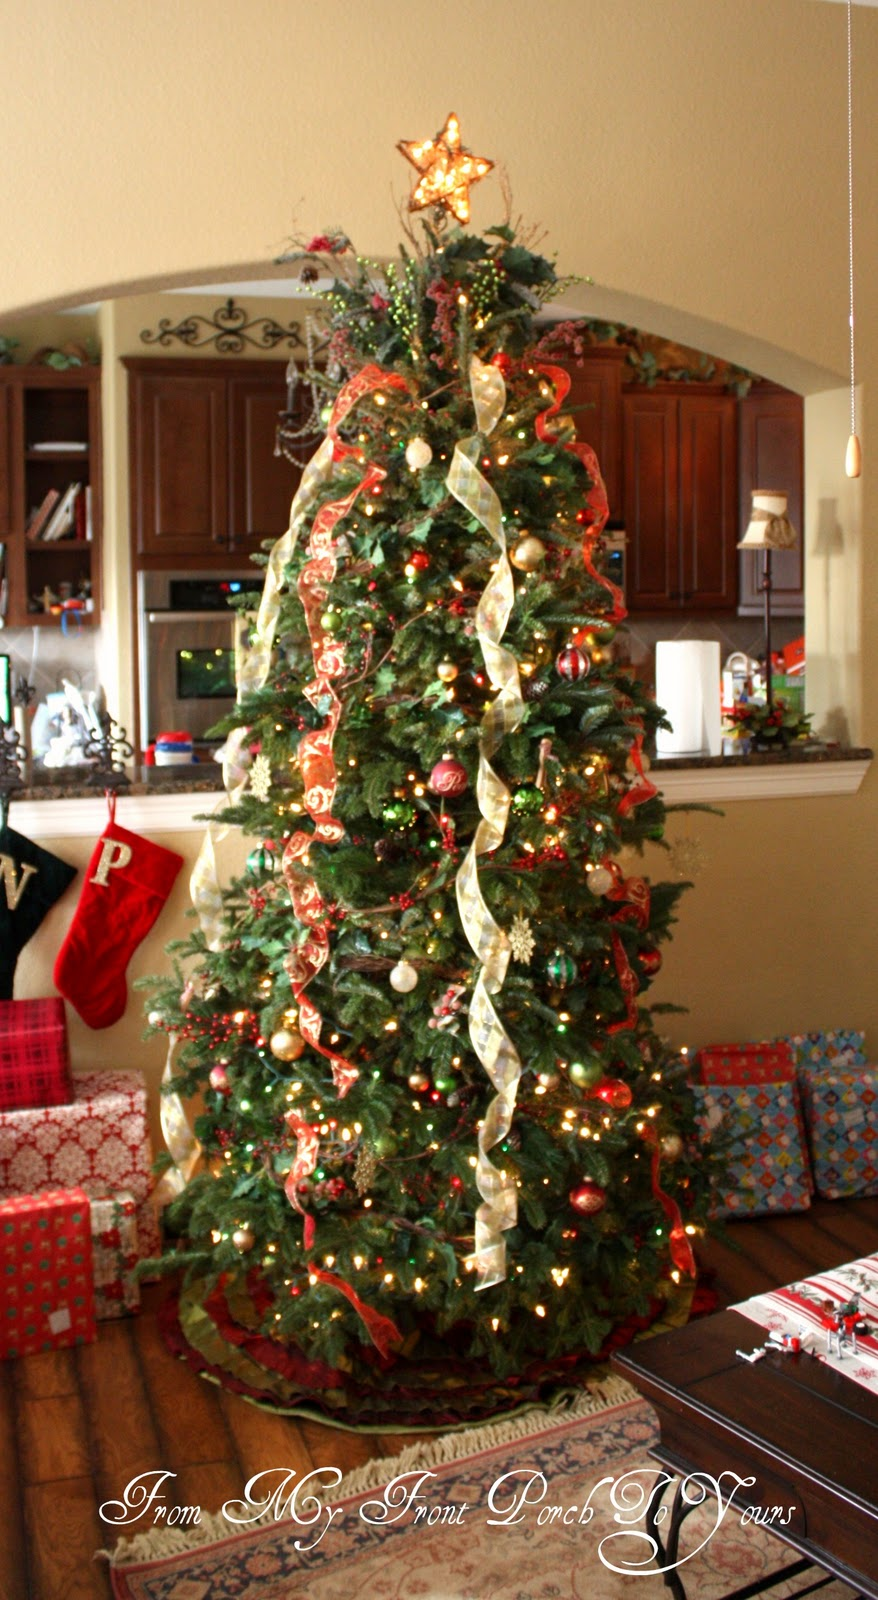 From My Front Porch To Yours: Christmas Tree 2011